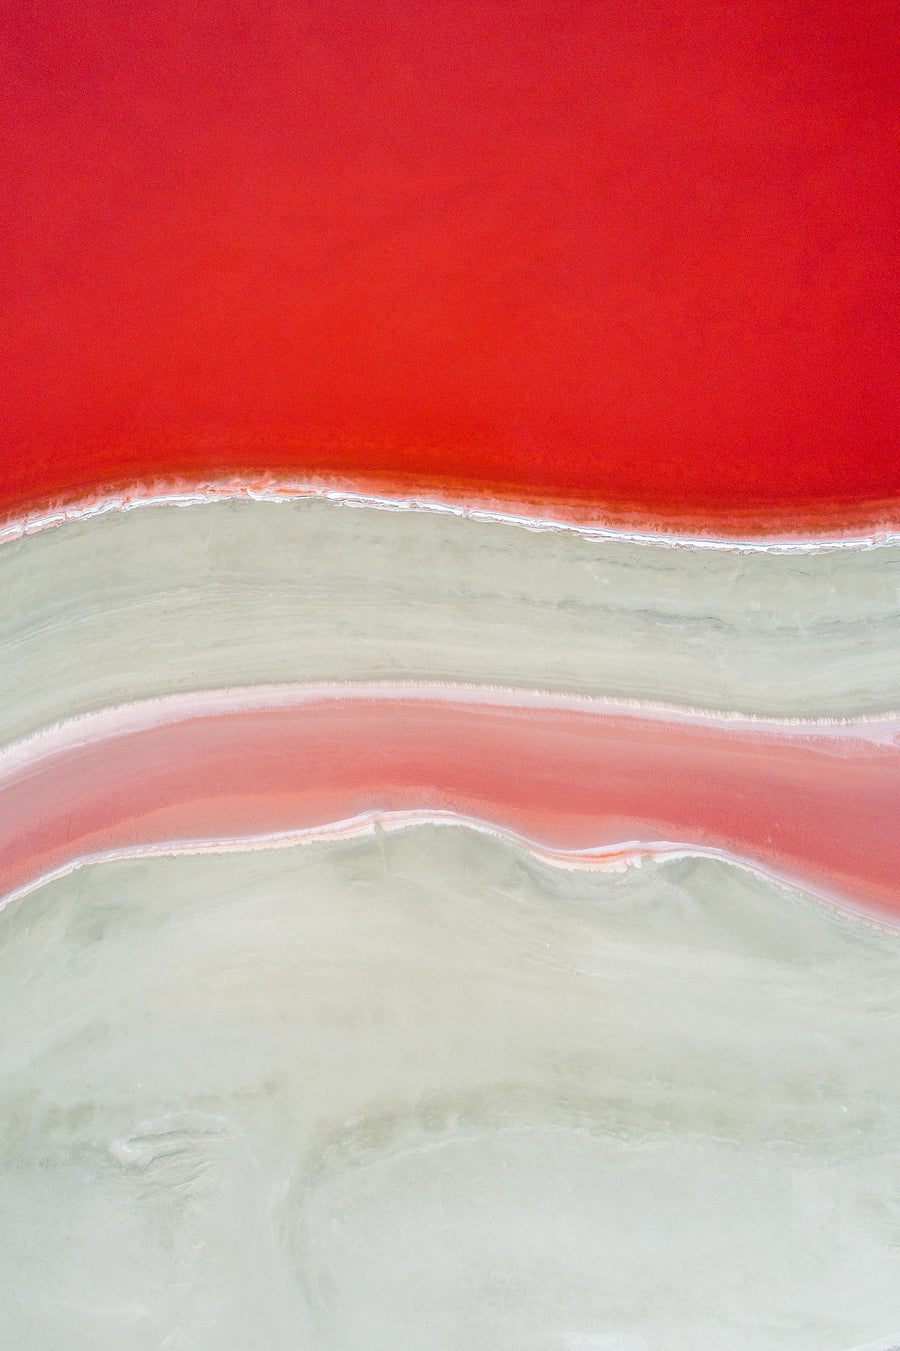 Aerial of red and white wavy lines. Salt lake Stirling Range Western Australia